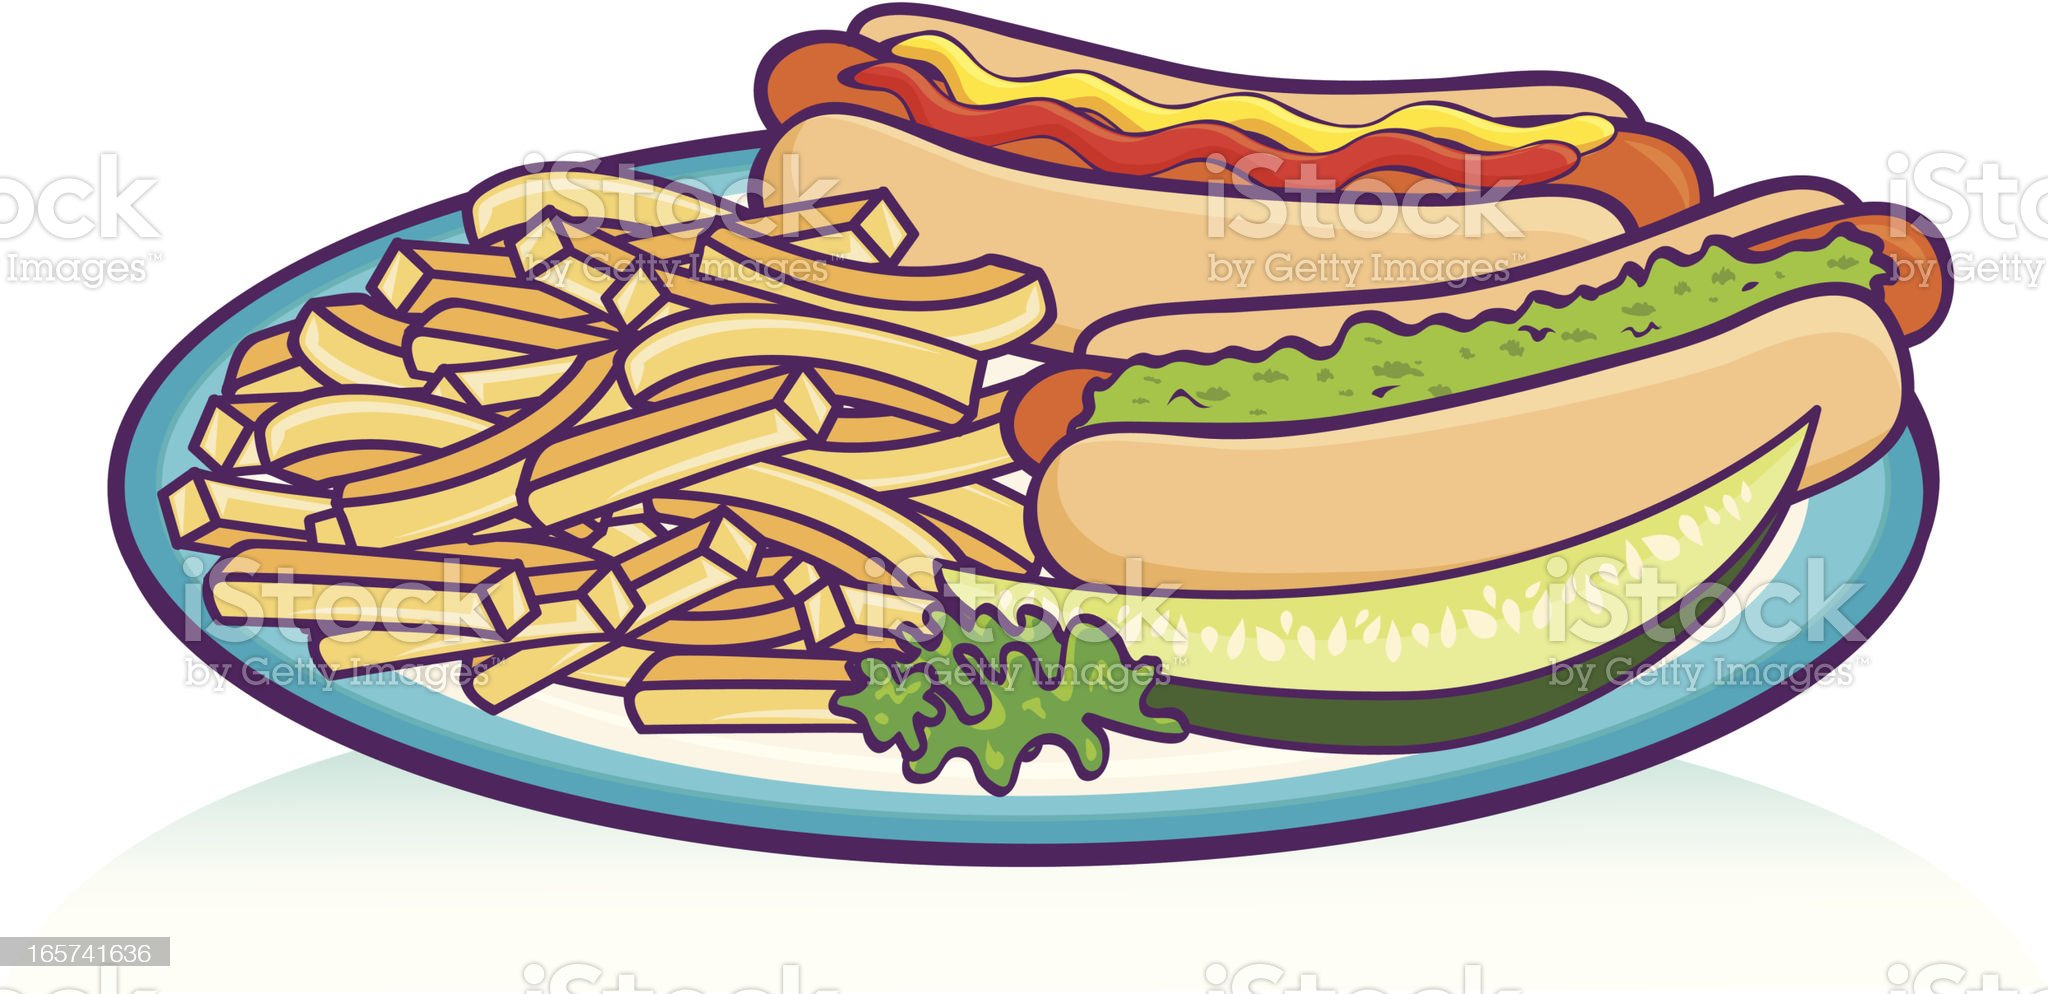 Hot Dog lunch plate royalty-free stock vector art